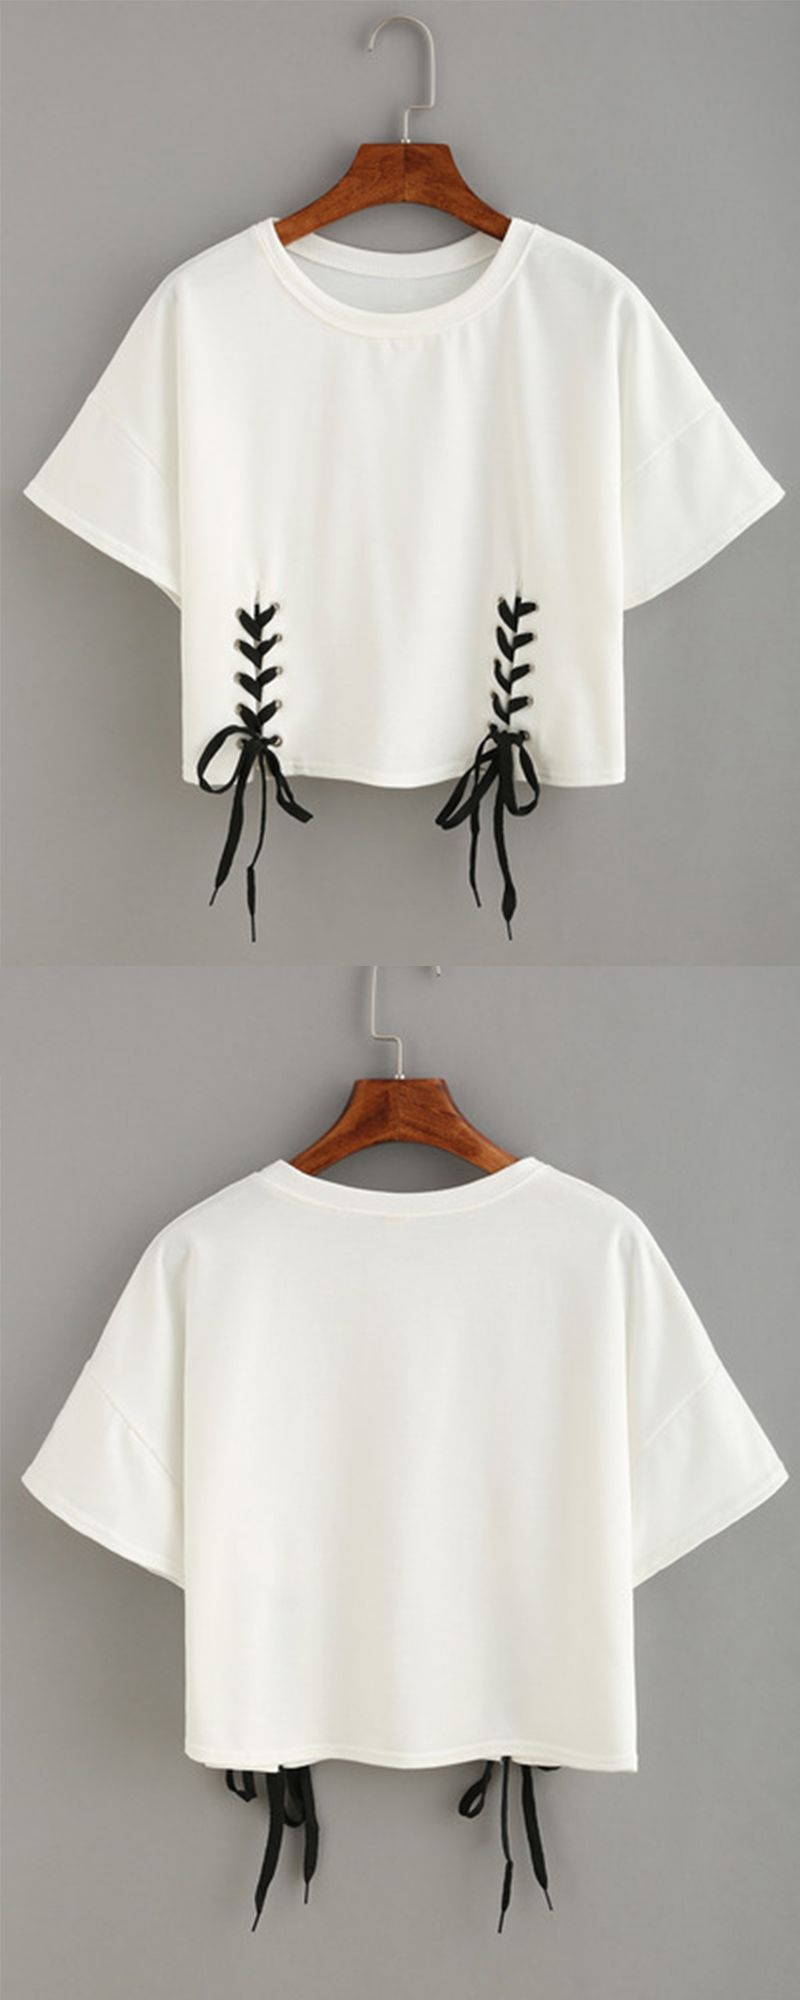 Diy Double Lace Up Hem Crop T Shirt Pinned On Benitathediva Diy Fashion Lifestyle Blog Diy Clothes Refashion Clothes Diy Shirt